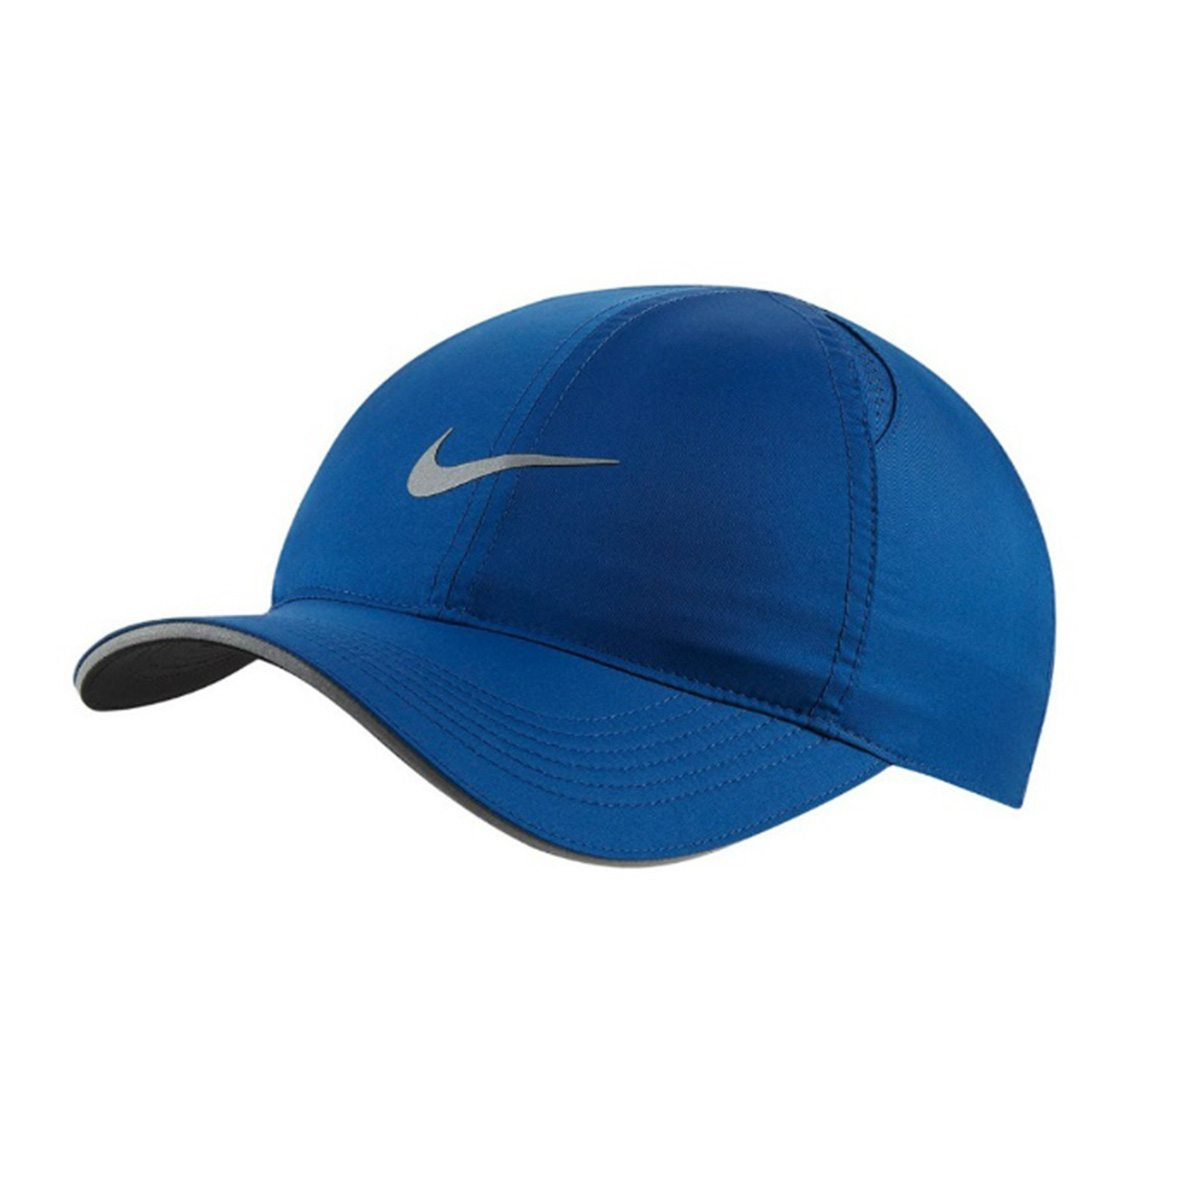 Bone Nike Aerobill FeatherLight